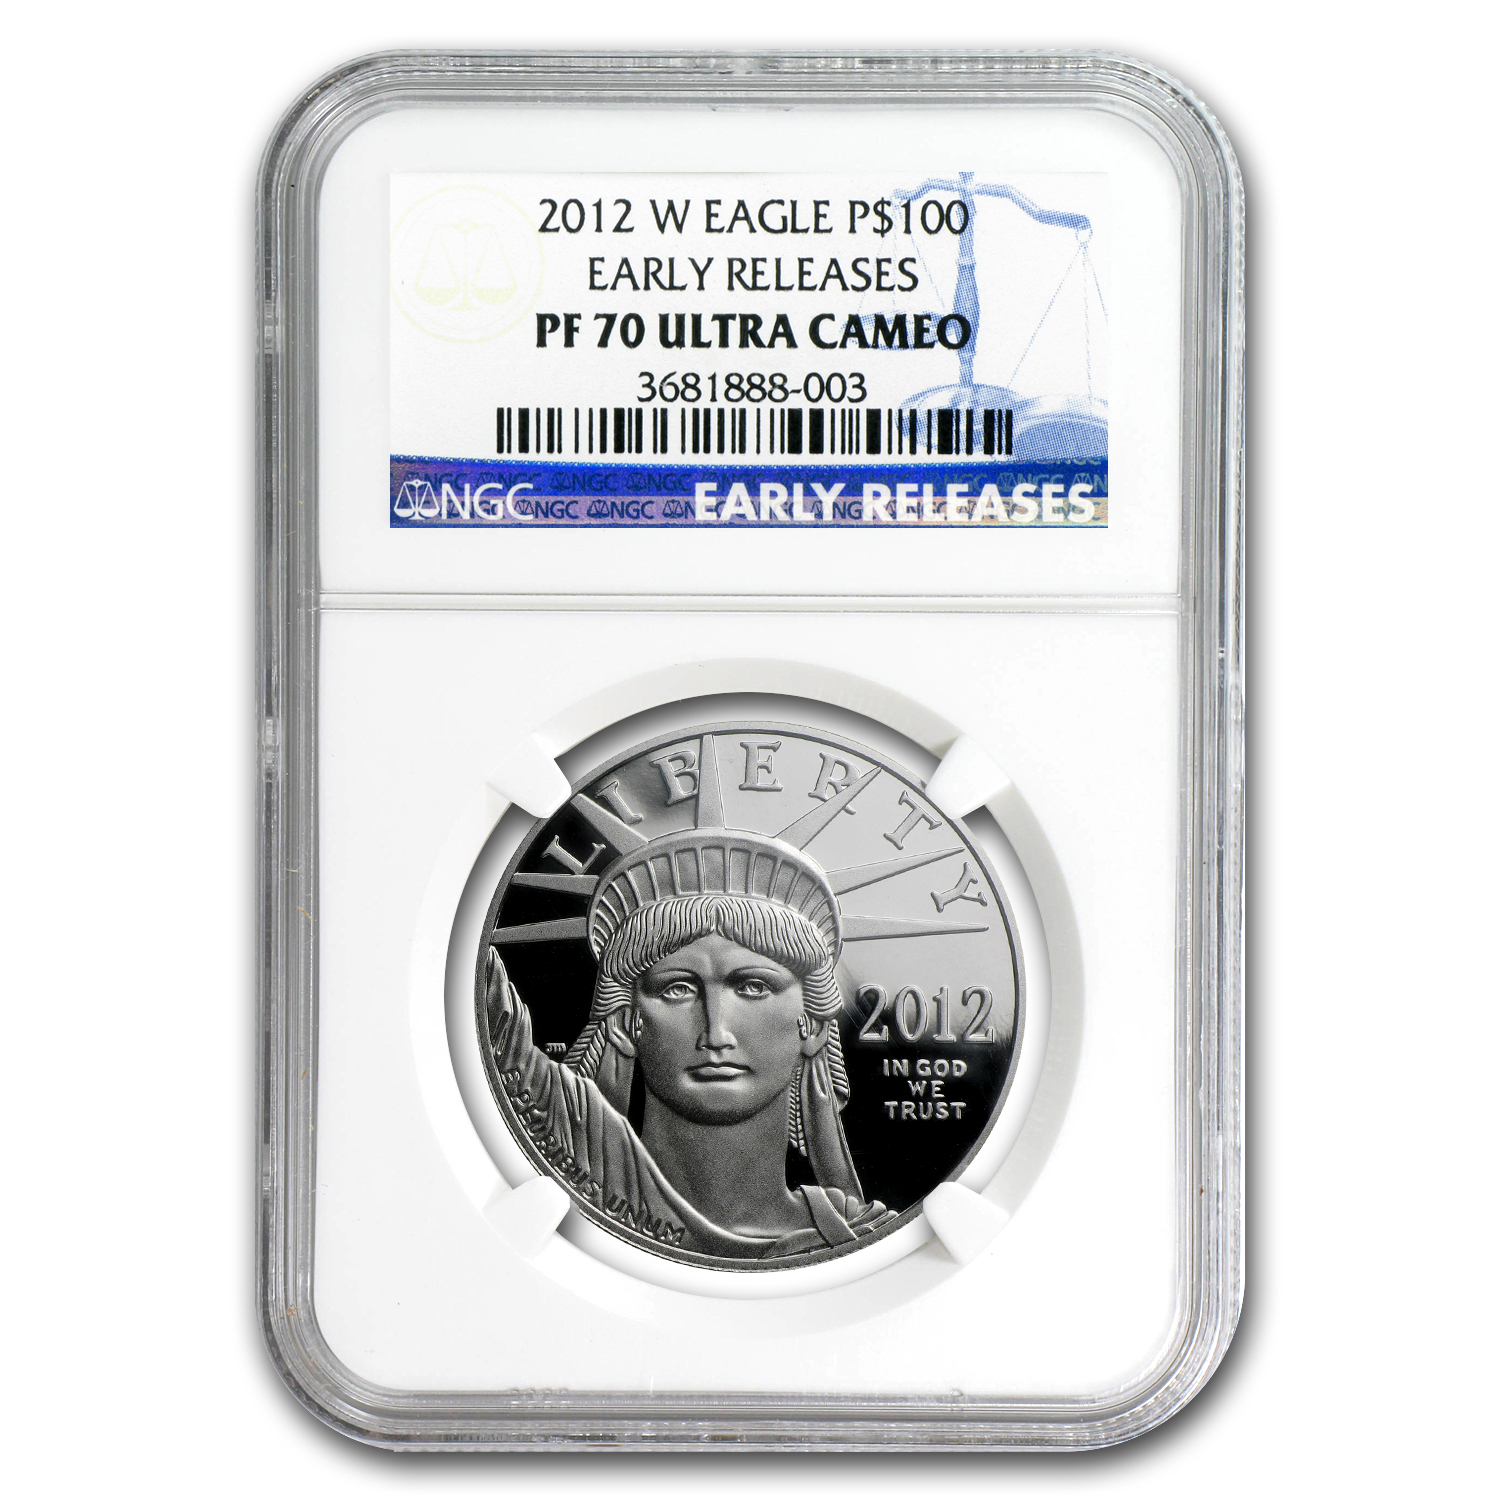 2012-W 1 oz Proof Platinum American Eagle NGC PF-70 Early Release